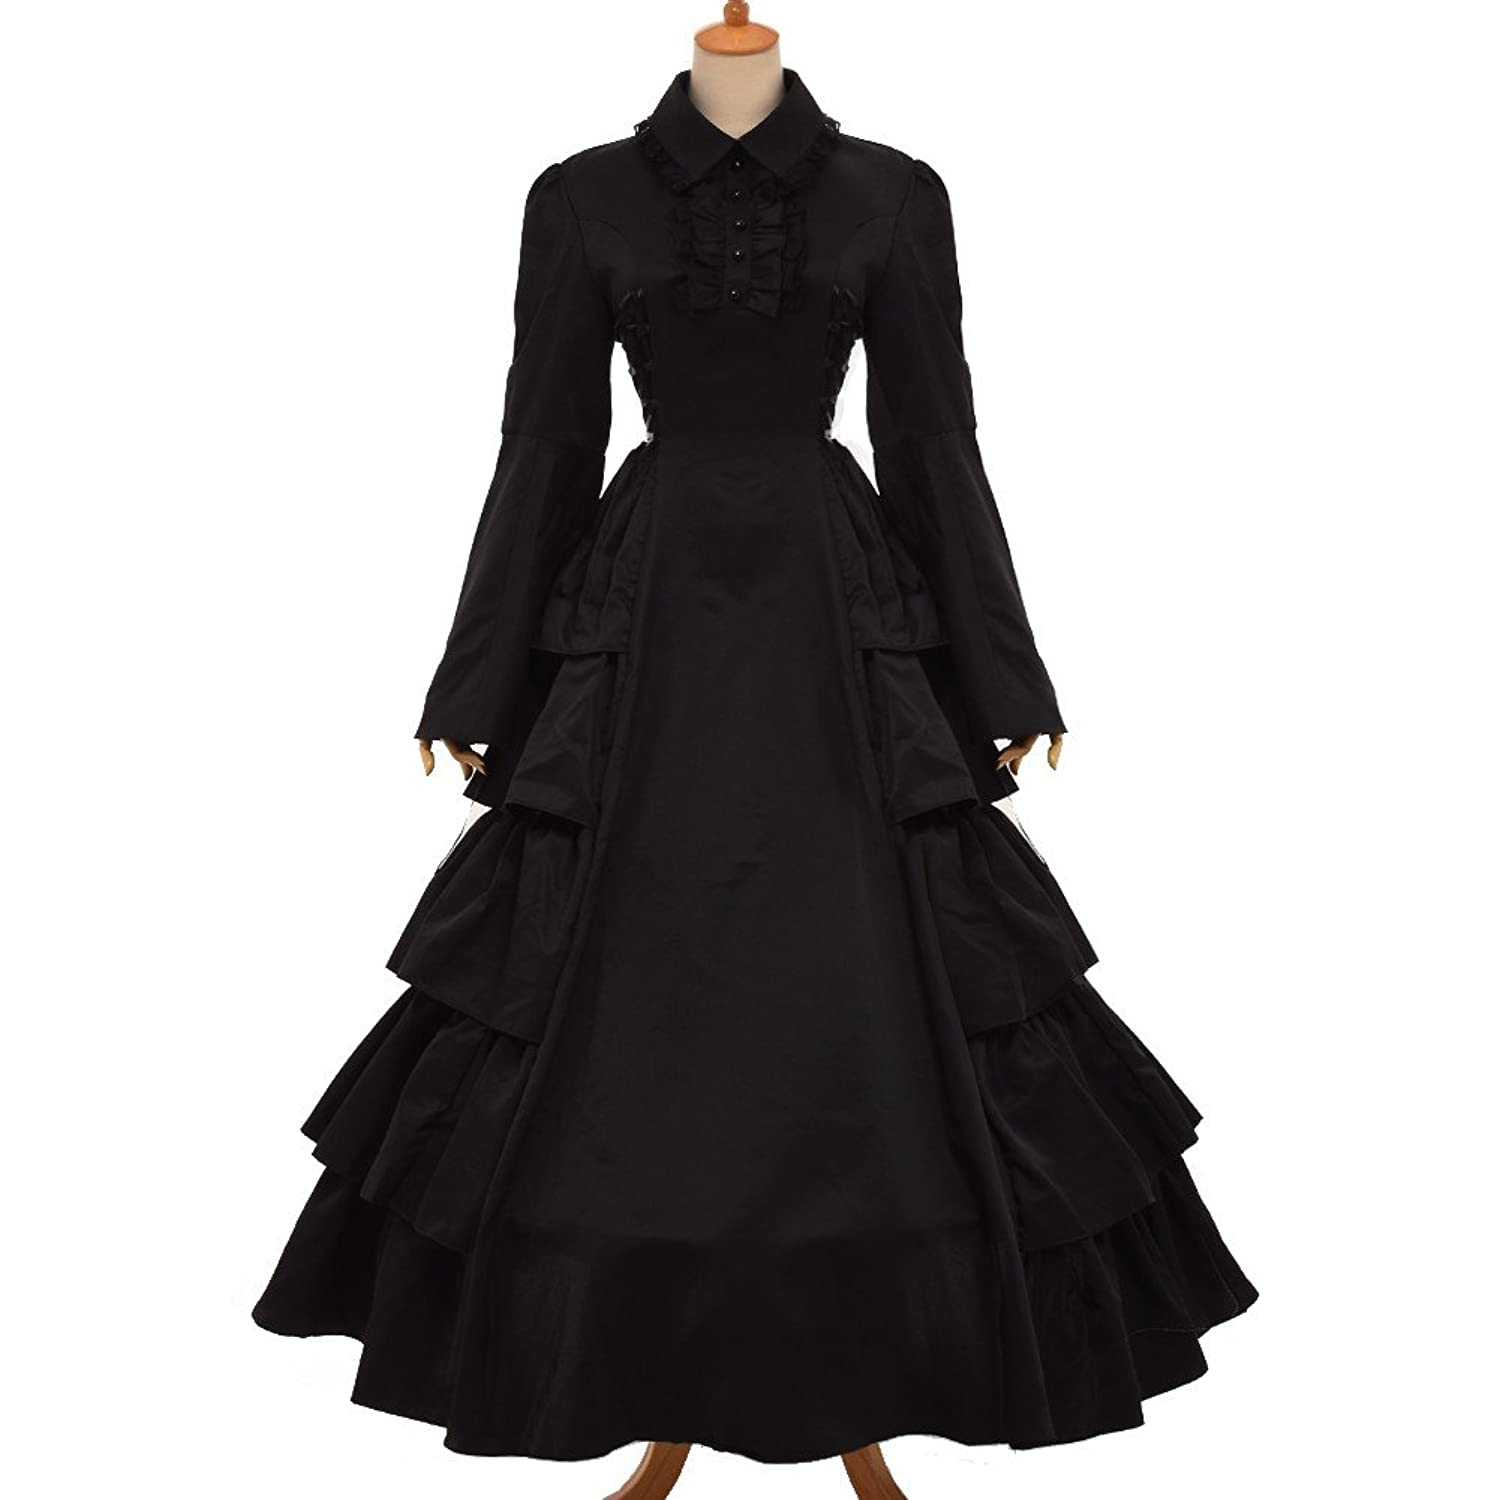 Old Fashioned Dresses | Old Dress Styles Victorian Gothic Ball Gown Dress Cosutume  AT vintagedancer.com